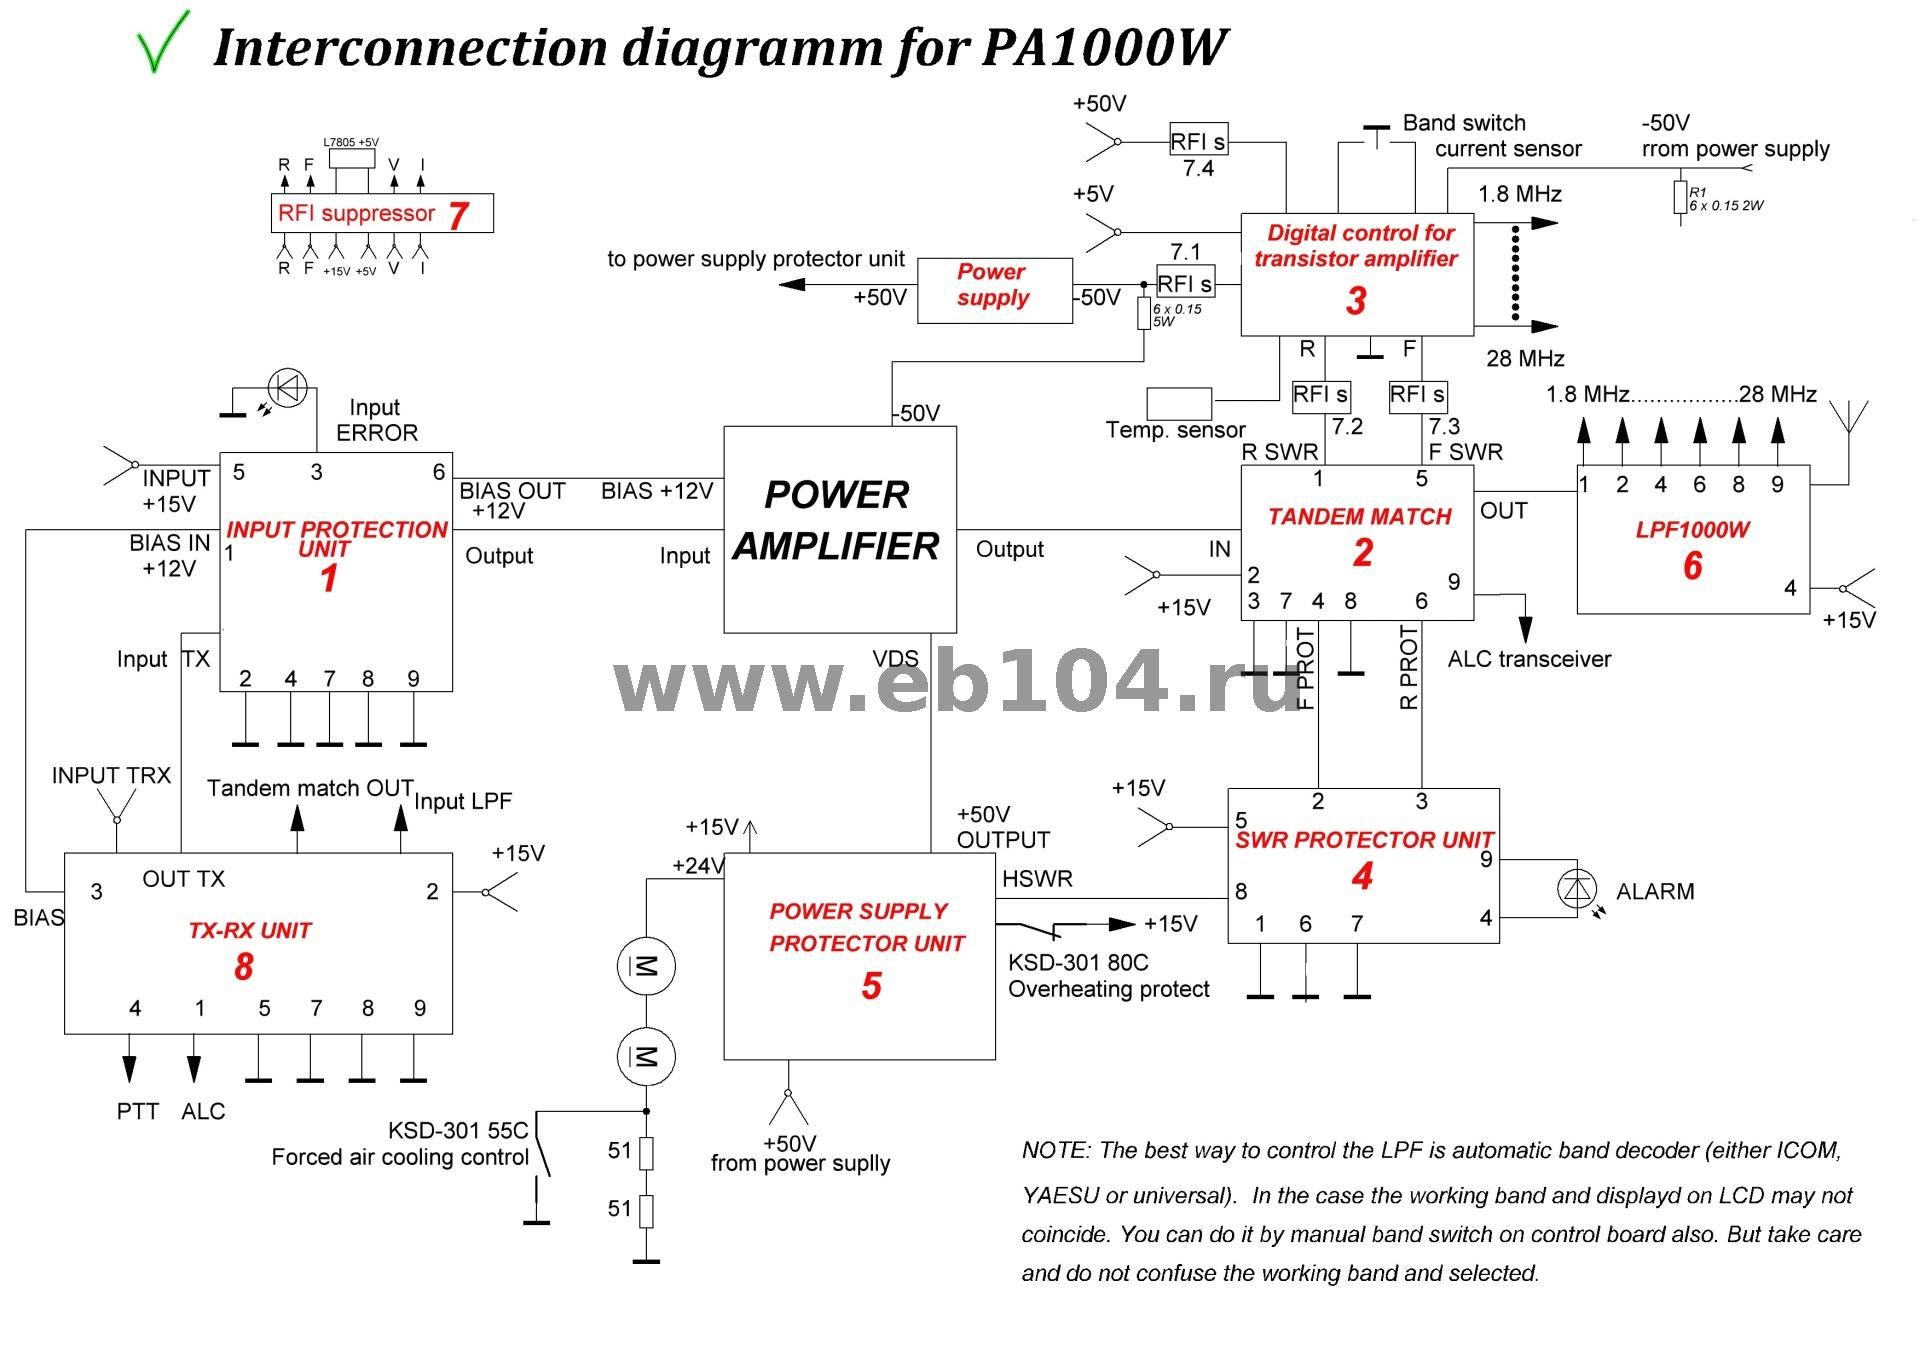 Hf Power Amplifier Ldmos Trasistor 1000 1200 2400w Output 1000w High With Mosfet Circuit Schematic Diagram Full Kit 1200w 18 30mhz Blf188xr Witn Supply Protector Unit